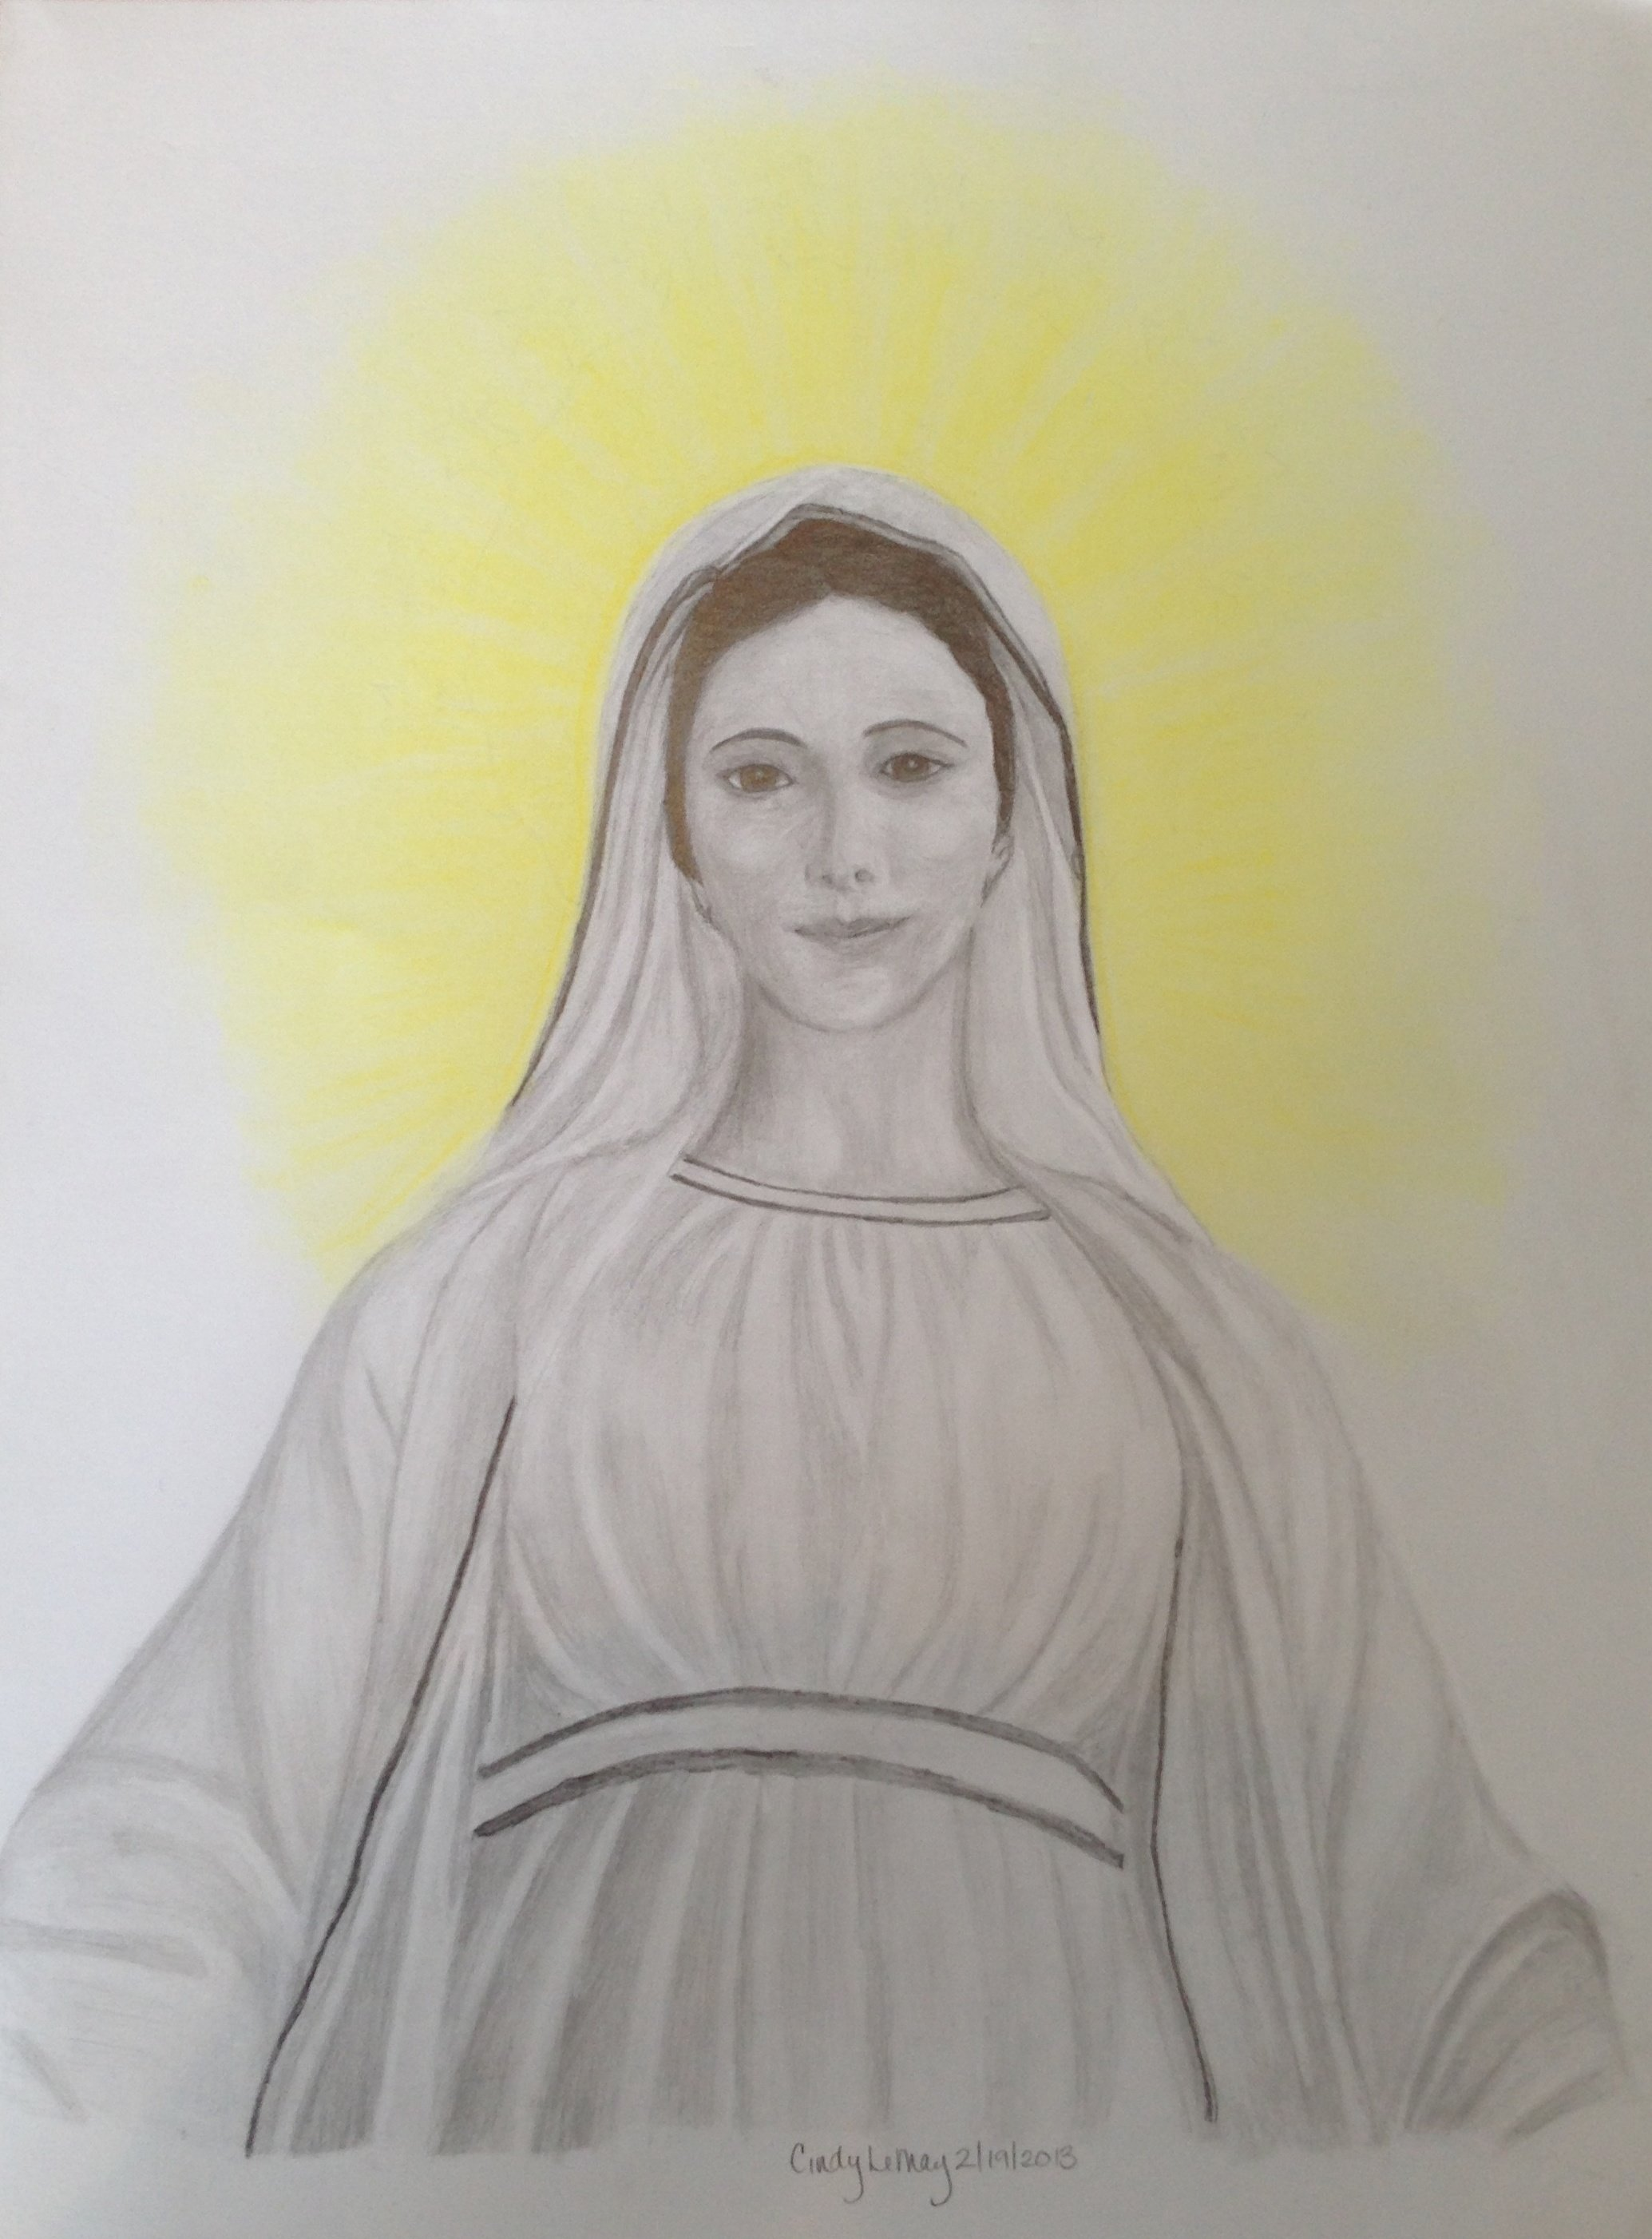 Sketch of Virgin Mary in large format.